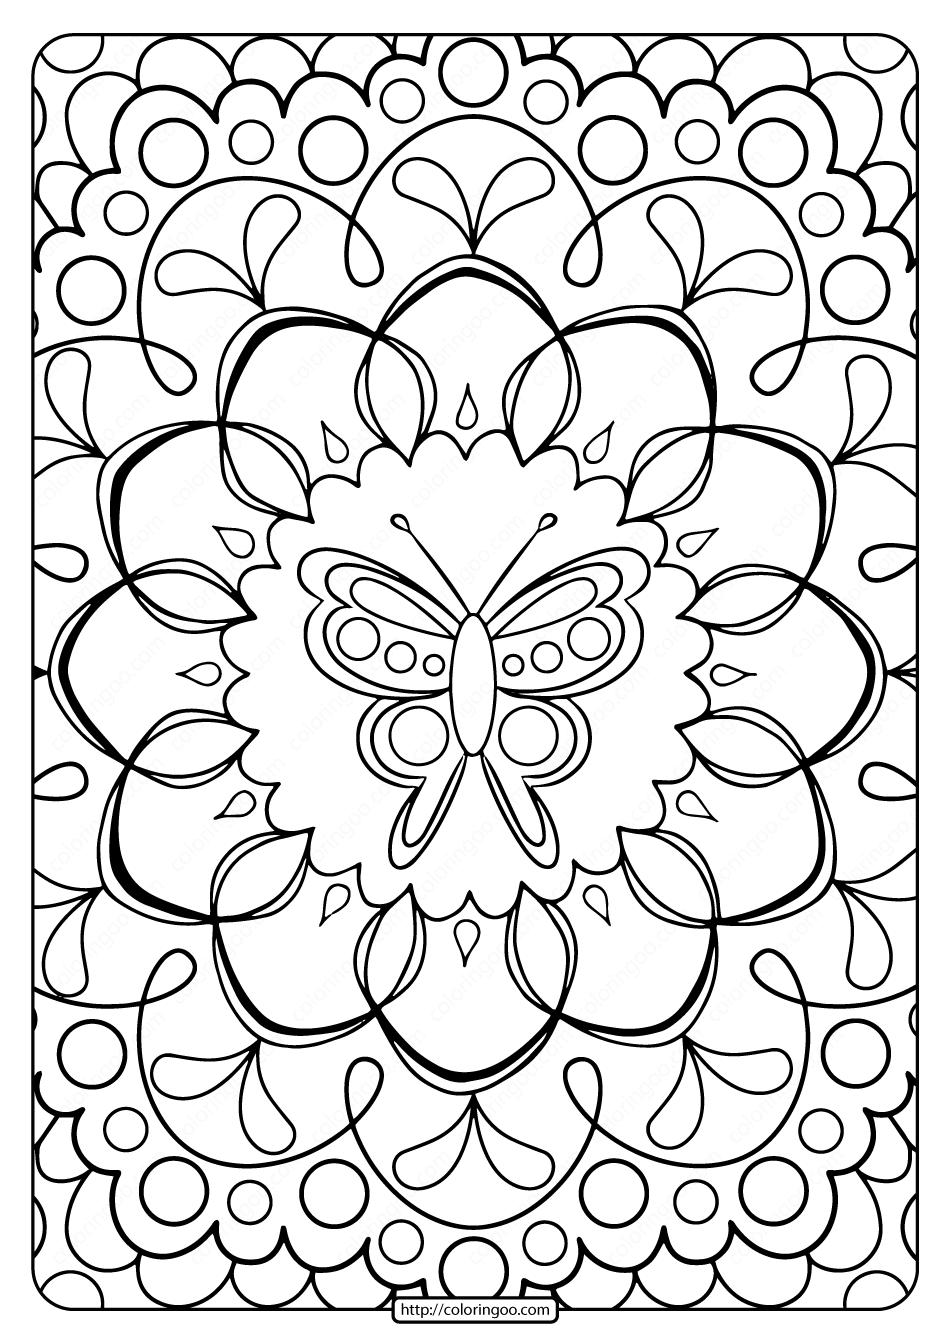 coloring printable free 40 exclusive kids coloring pages ideas we need fun free printable coloring